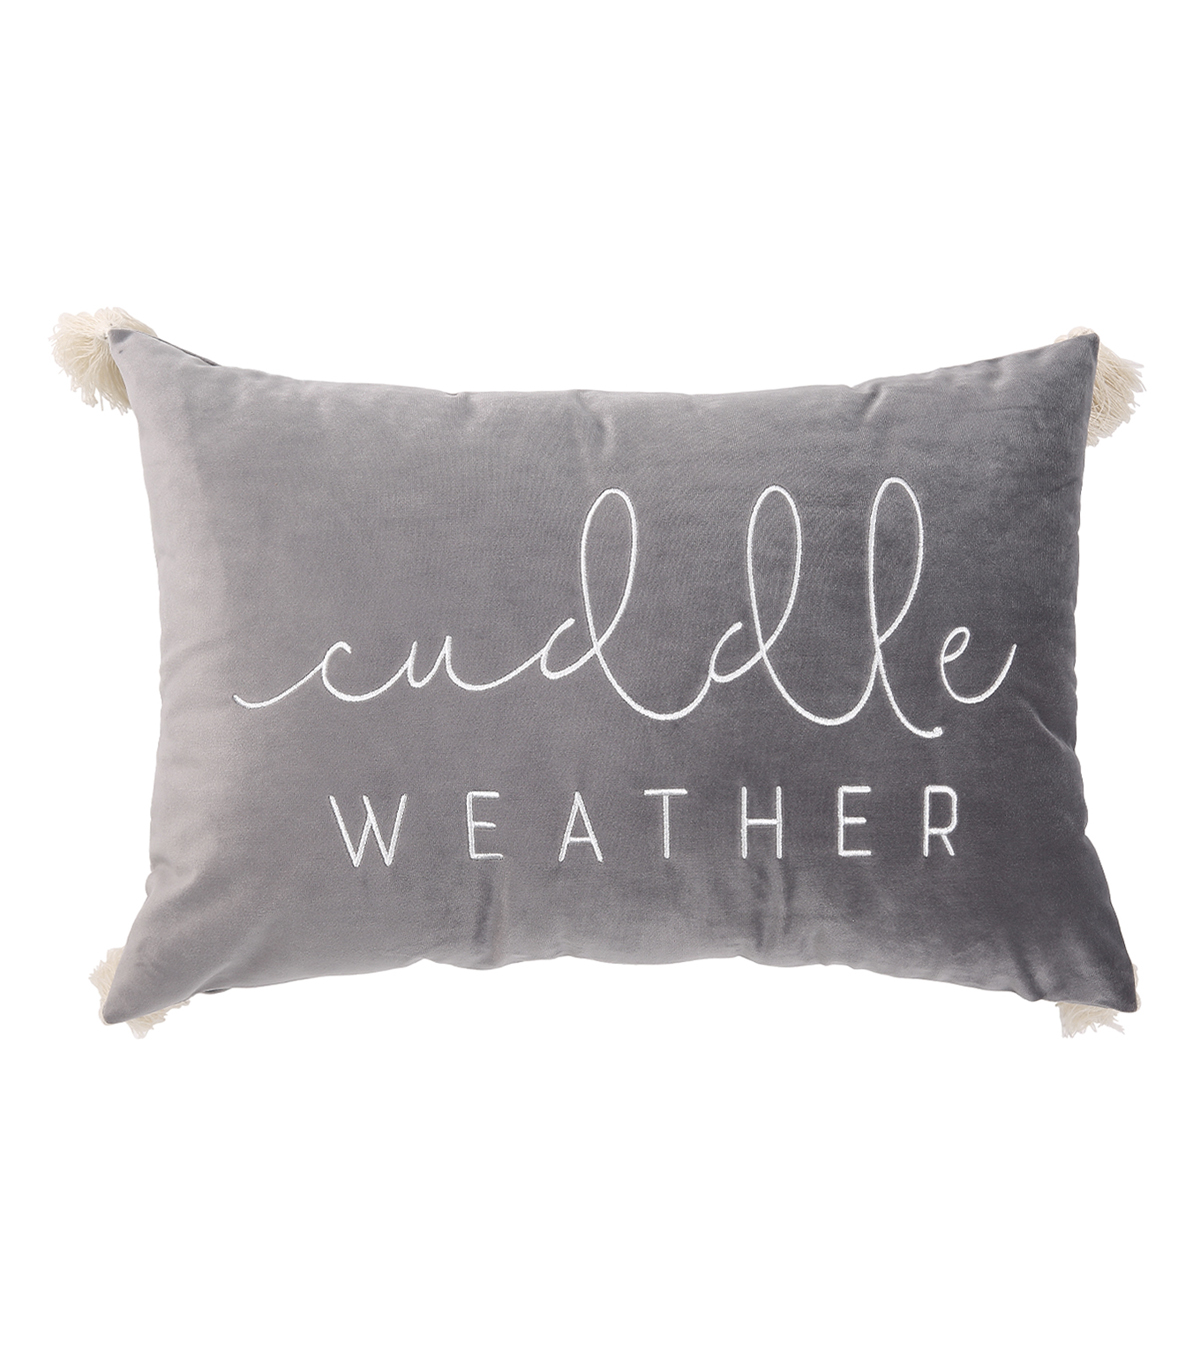 Simply Autumn Lumbar Pillow-Cuddle Weather on Gray